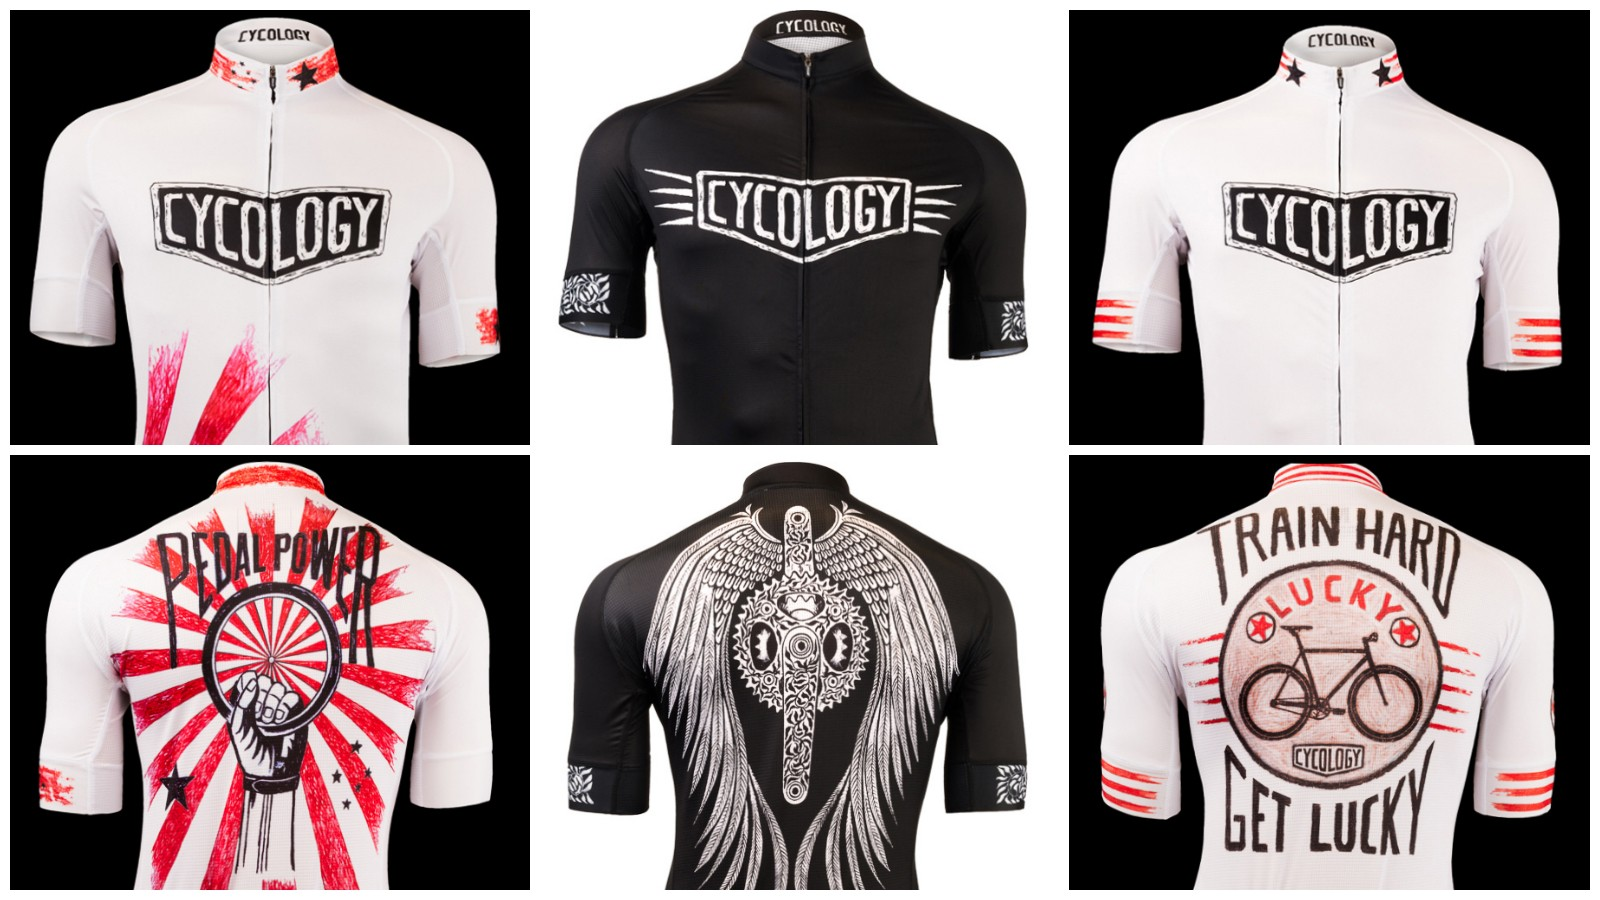 Cycology, best known for their T-shirts is getting into technical apparel. Despite the relatively low prices, these use top-end materials and construction for a racer fit